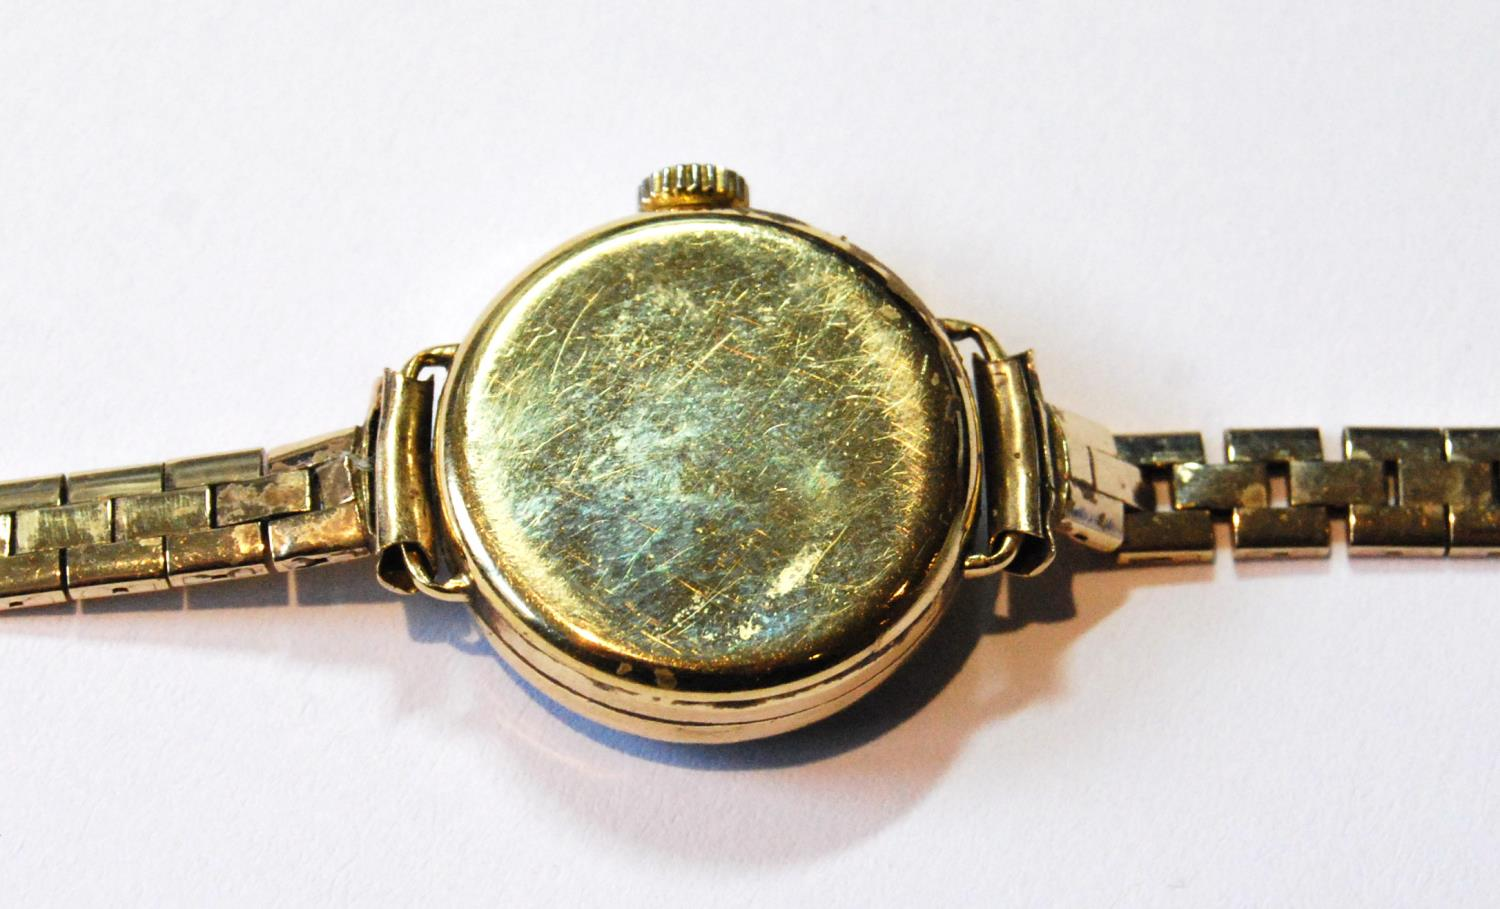 Garrard lady's 18ct gold watch with diamond-set bezel, 1919, movement replaced, on 9ct gold - Image 3 of 4